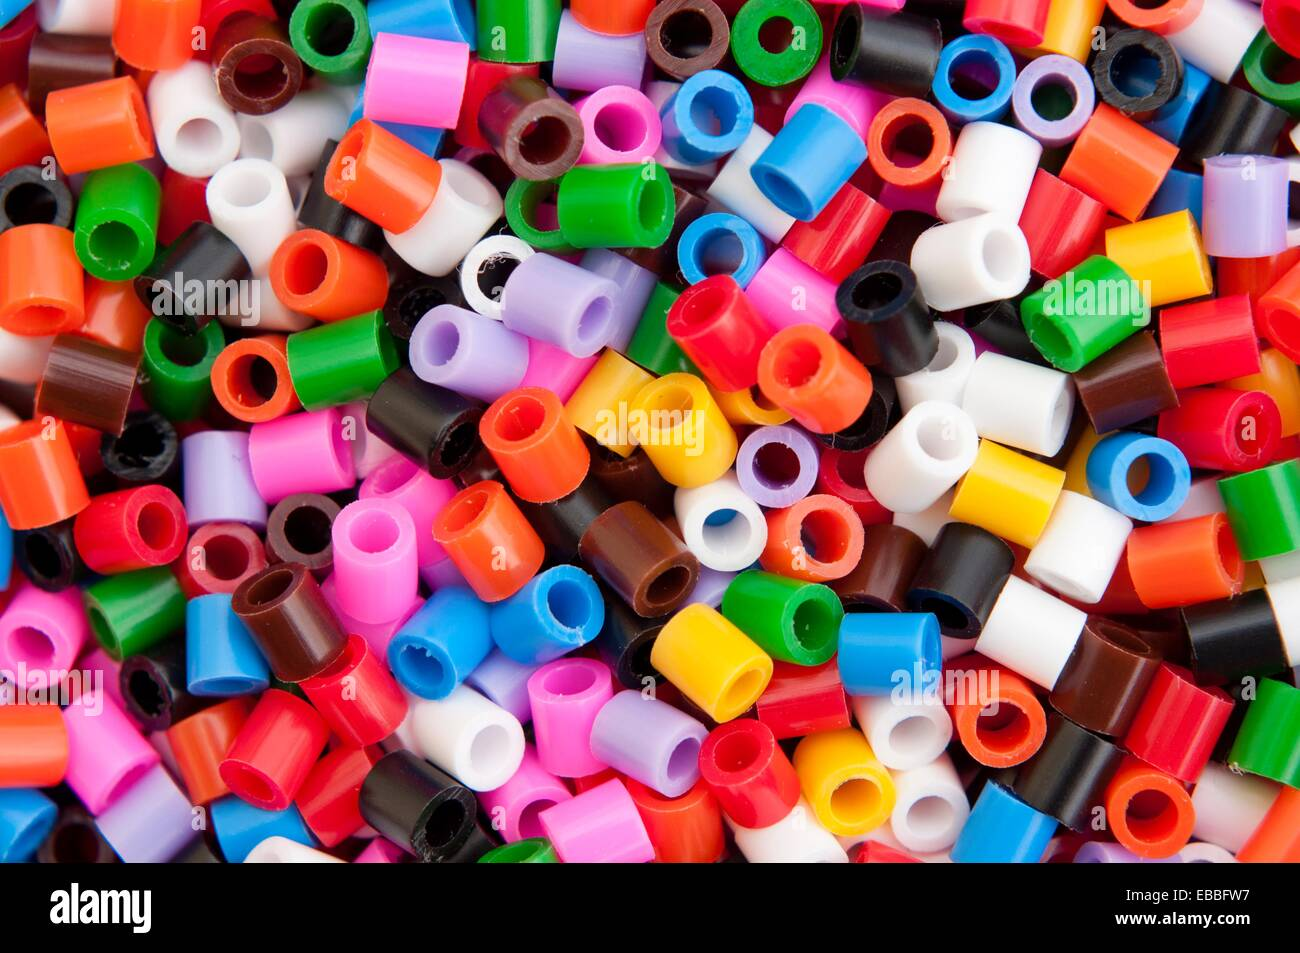 Bright Colourful Craft Materials For Children S Play Stock Photo